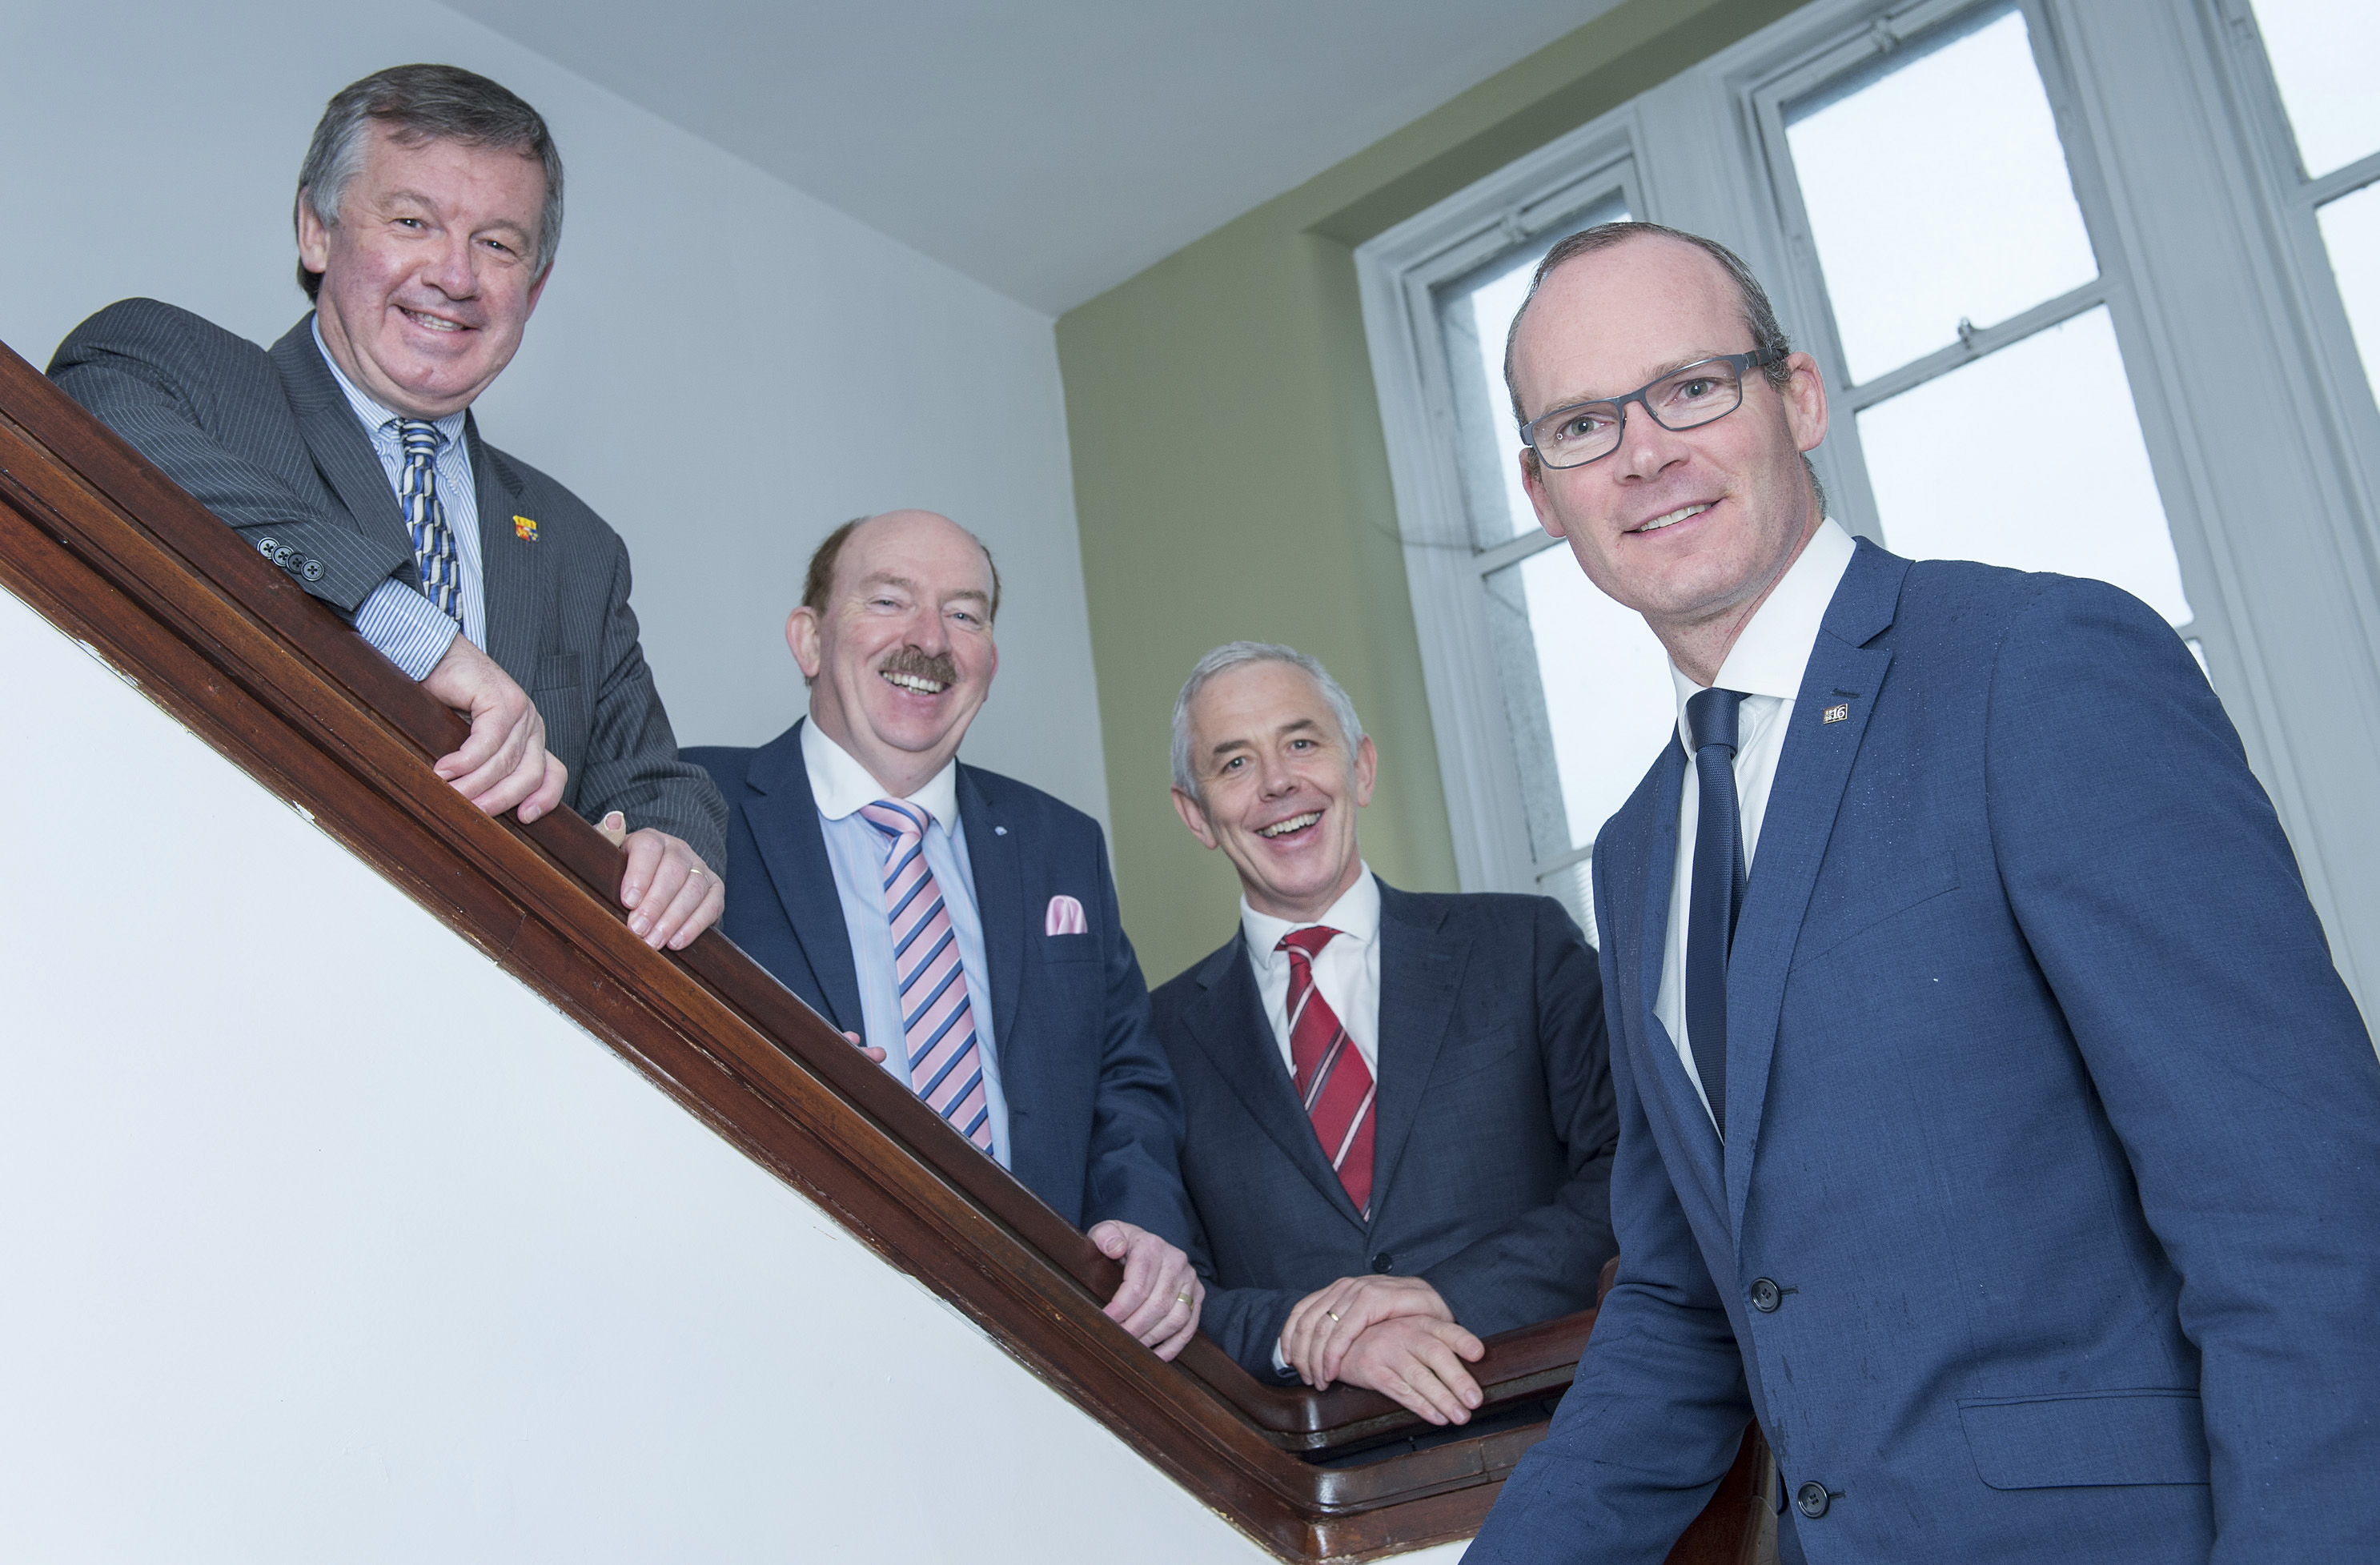 New home 'delivered' for UCC's College of Medicine and Health